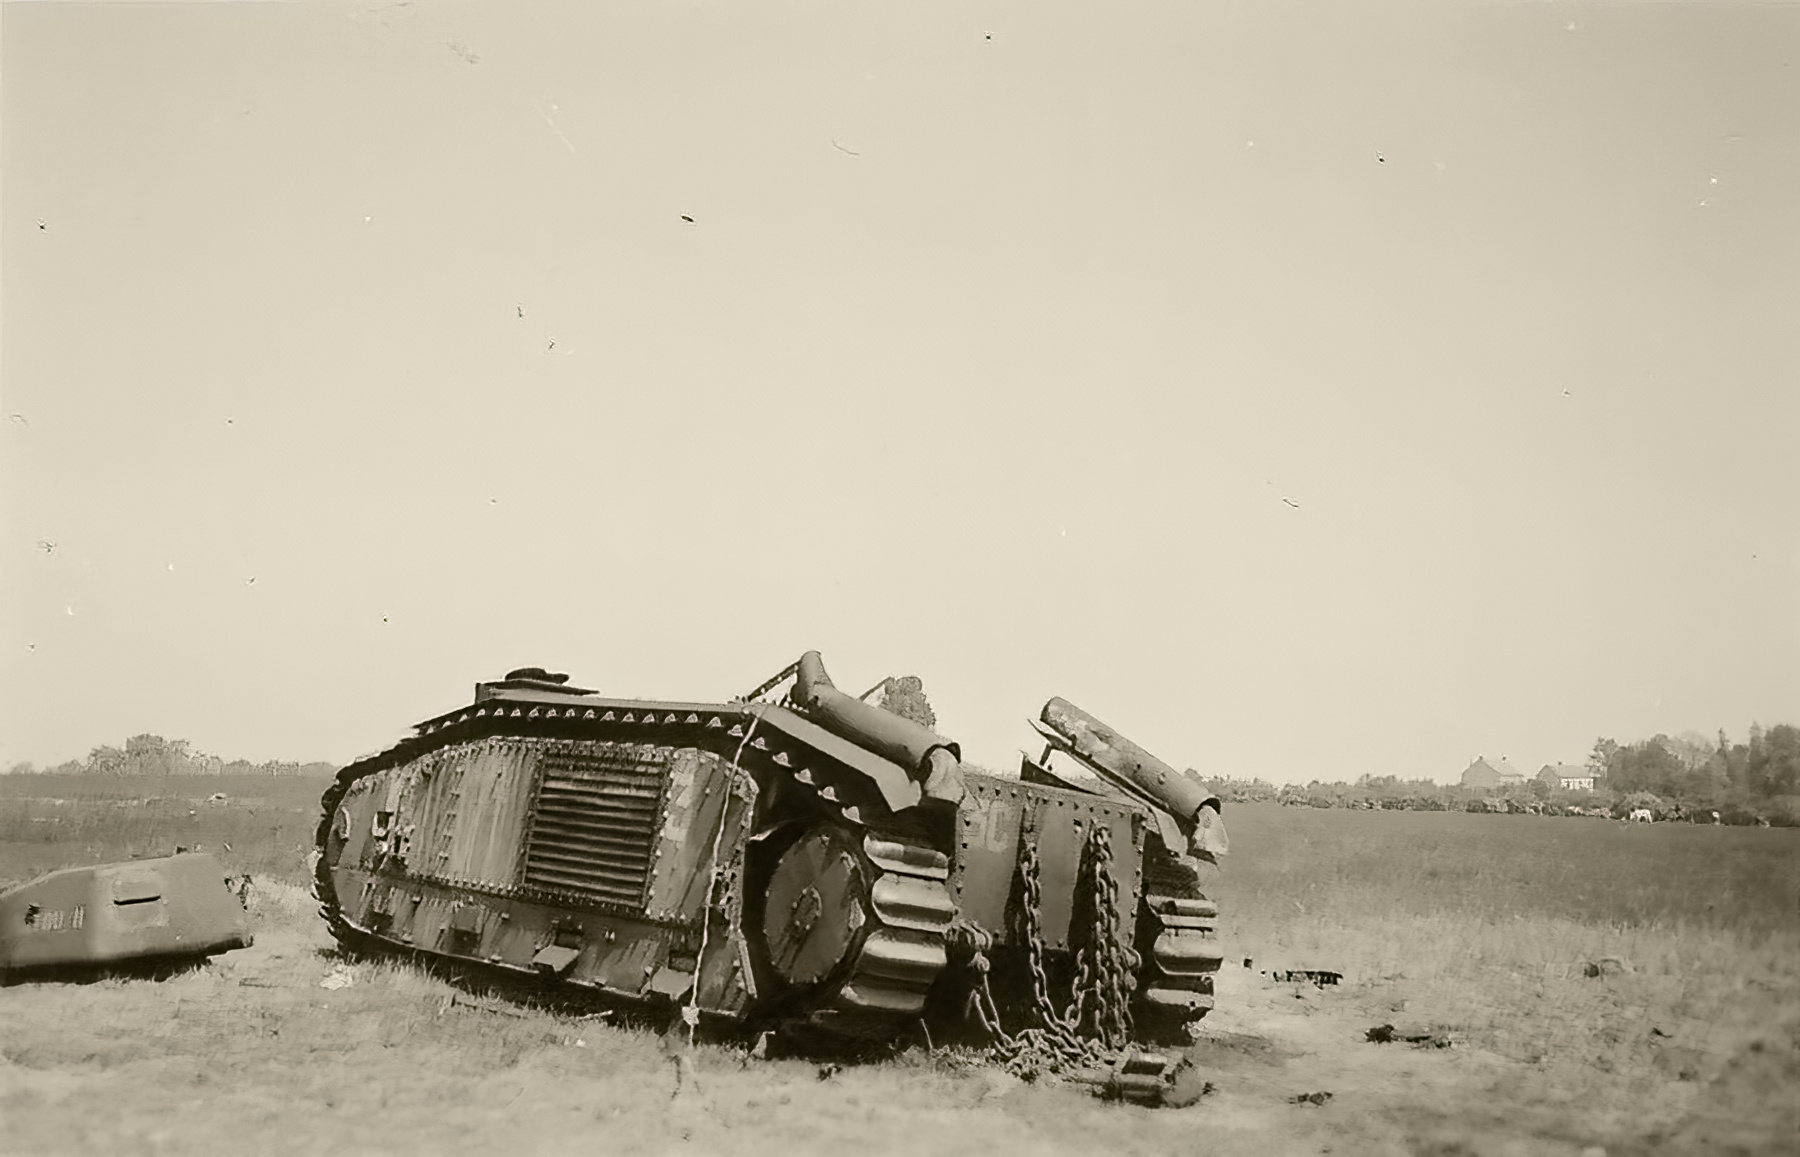 French Army Renault Char B1bis destroyed during the battle of France 1940 ebay 01